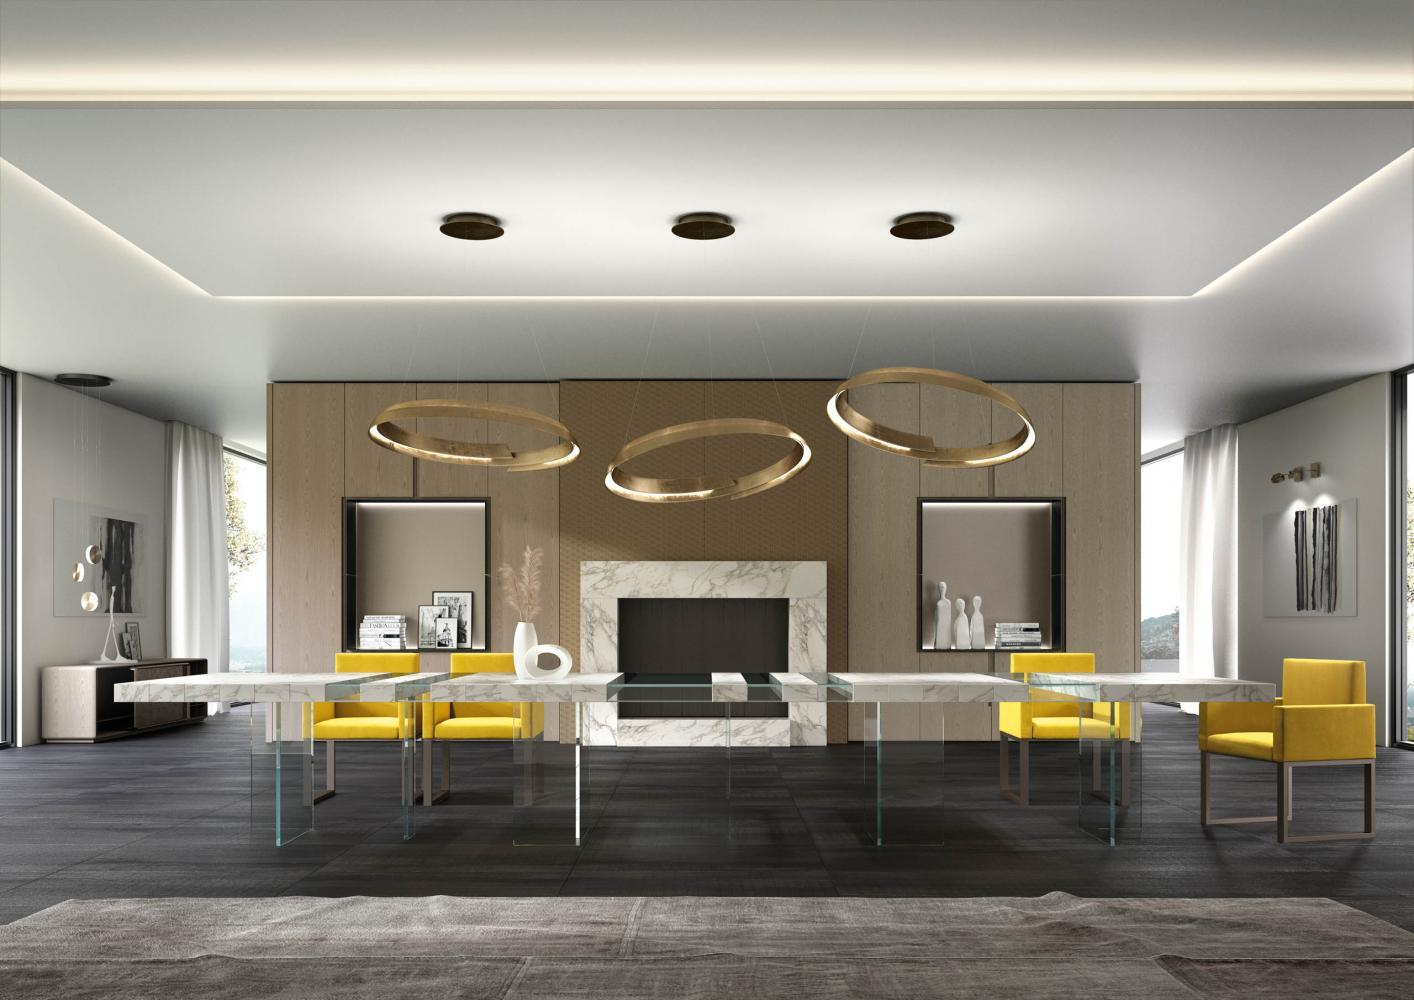 Laurameroni luxury modern made to measure bespoke rectangular, squared tables for contemporary interior decor and design